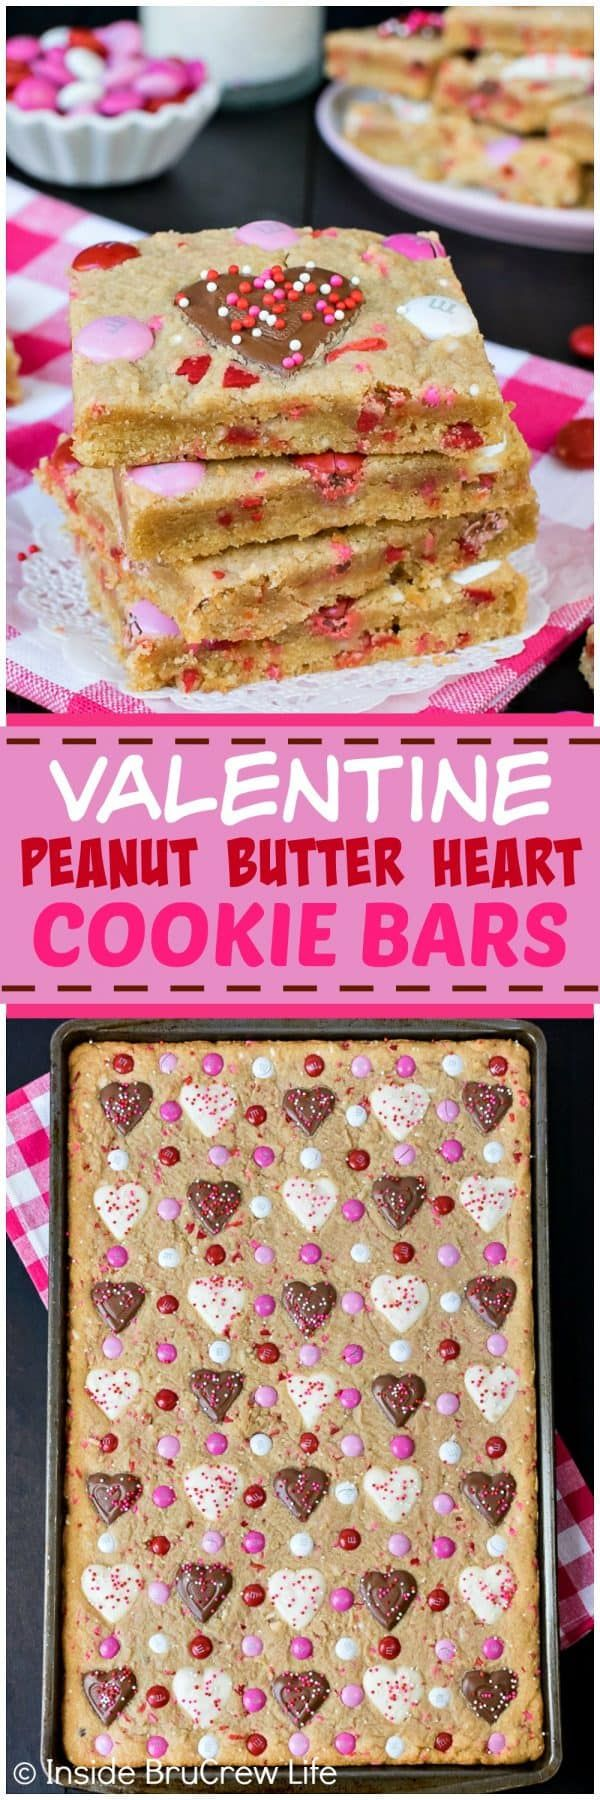 Valentine Peanut Butter Heart Cookie Bars - these easy bar cookies are loaded with sprinkles, candies, and peanut butter cup hearts! Such a quick and easy recipe to make for Valentine's day parties! ~ Inside BruCrew Life